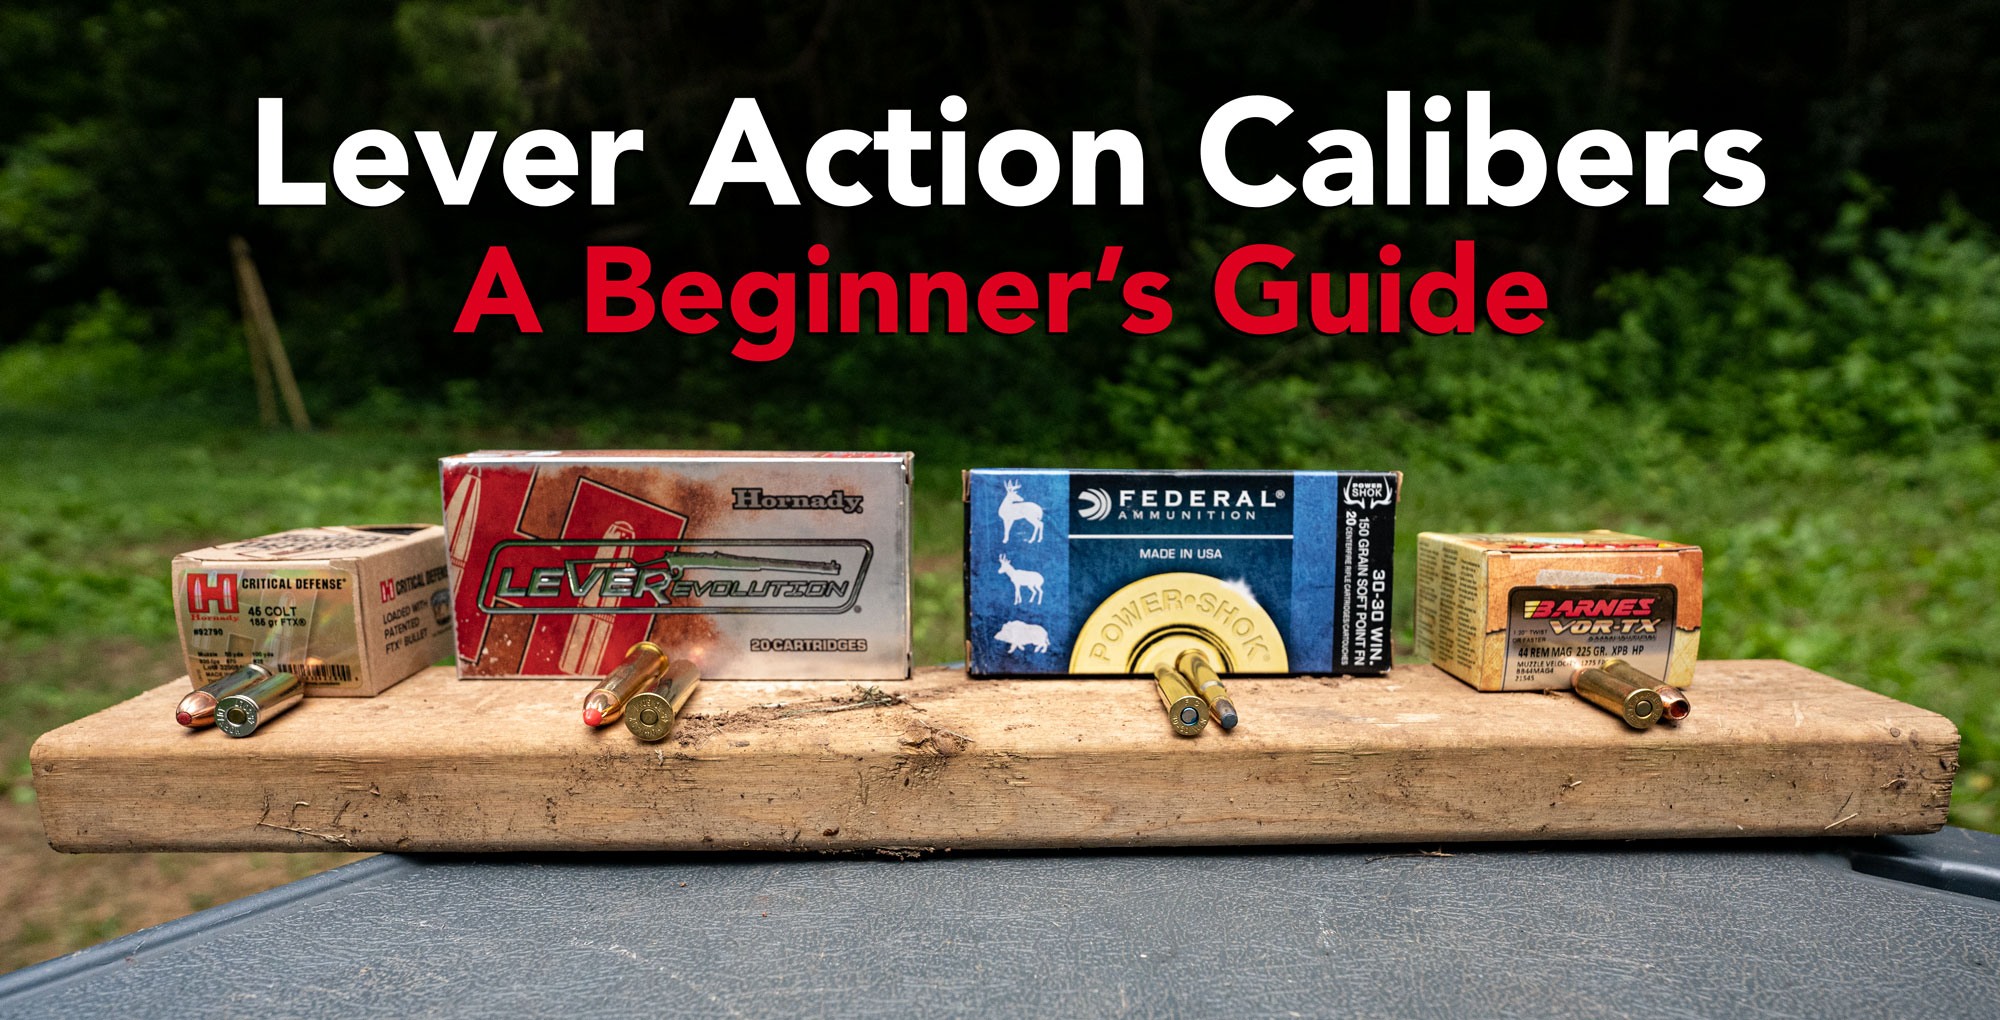 Guide to lever action rifle calibers